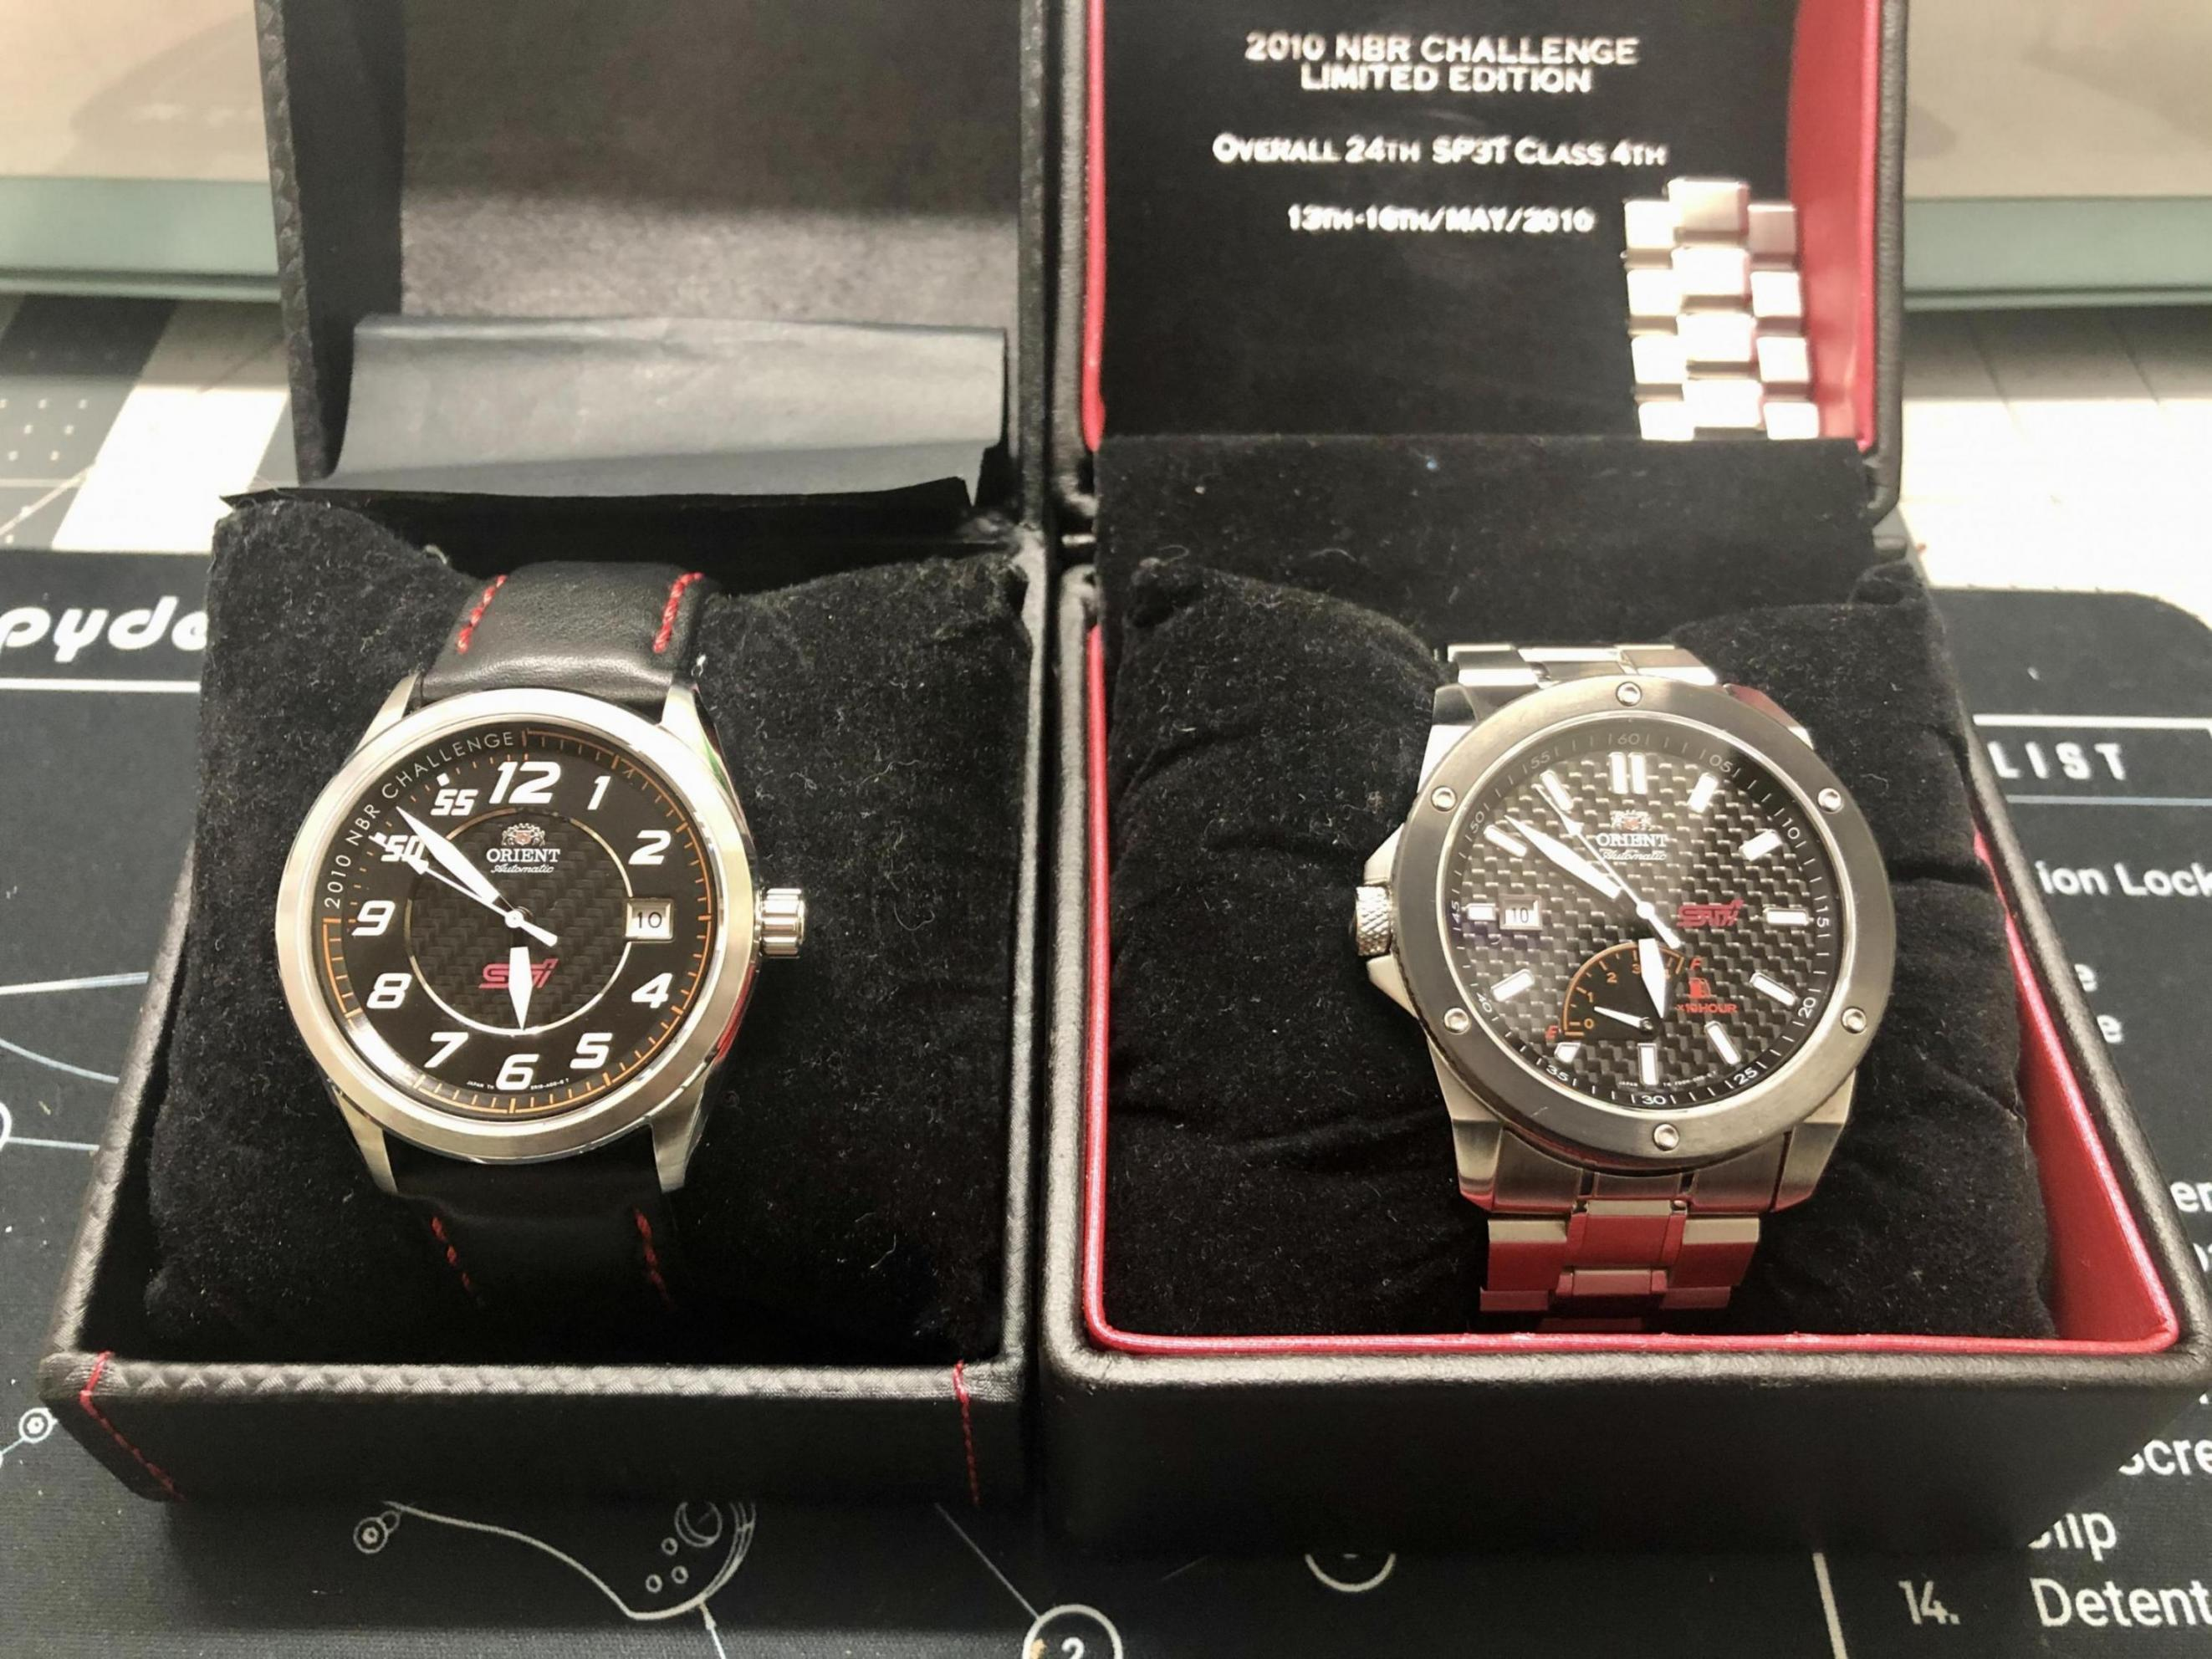 Orient X Sti Automatic Watches-74498d3d-9783-4f28-a132-2bf3c18b71fa_1565630410376-jpeg